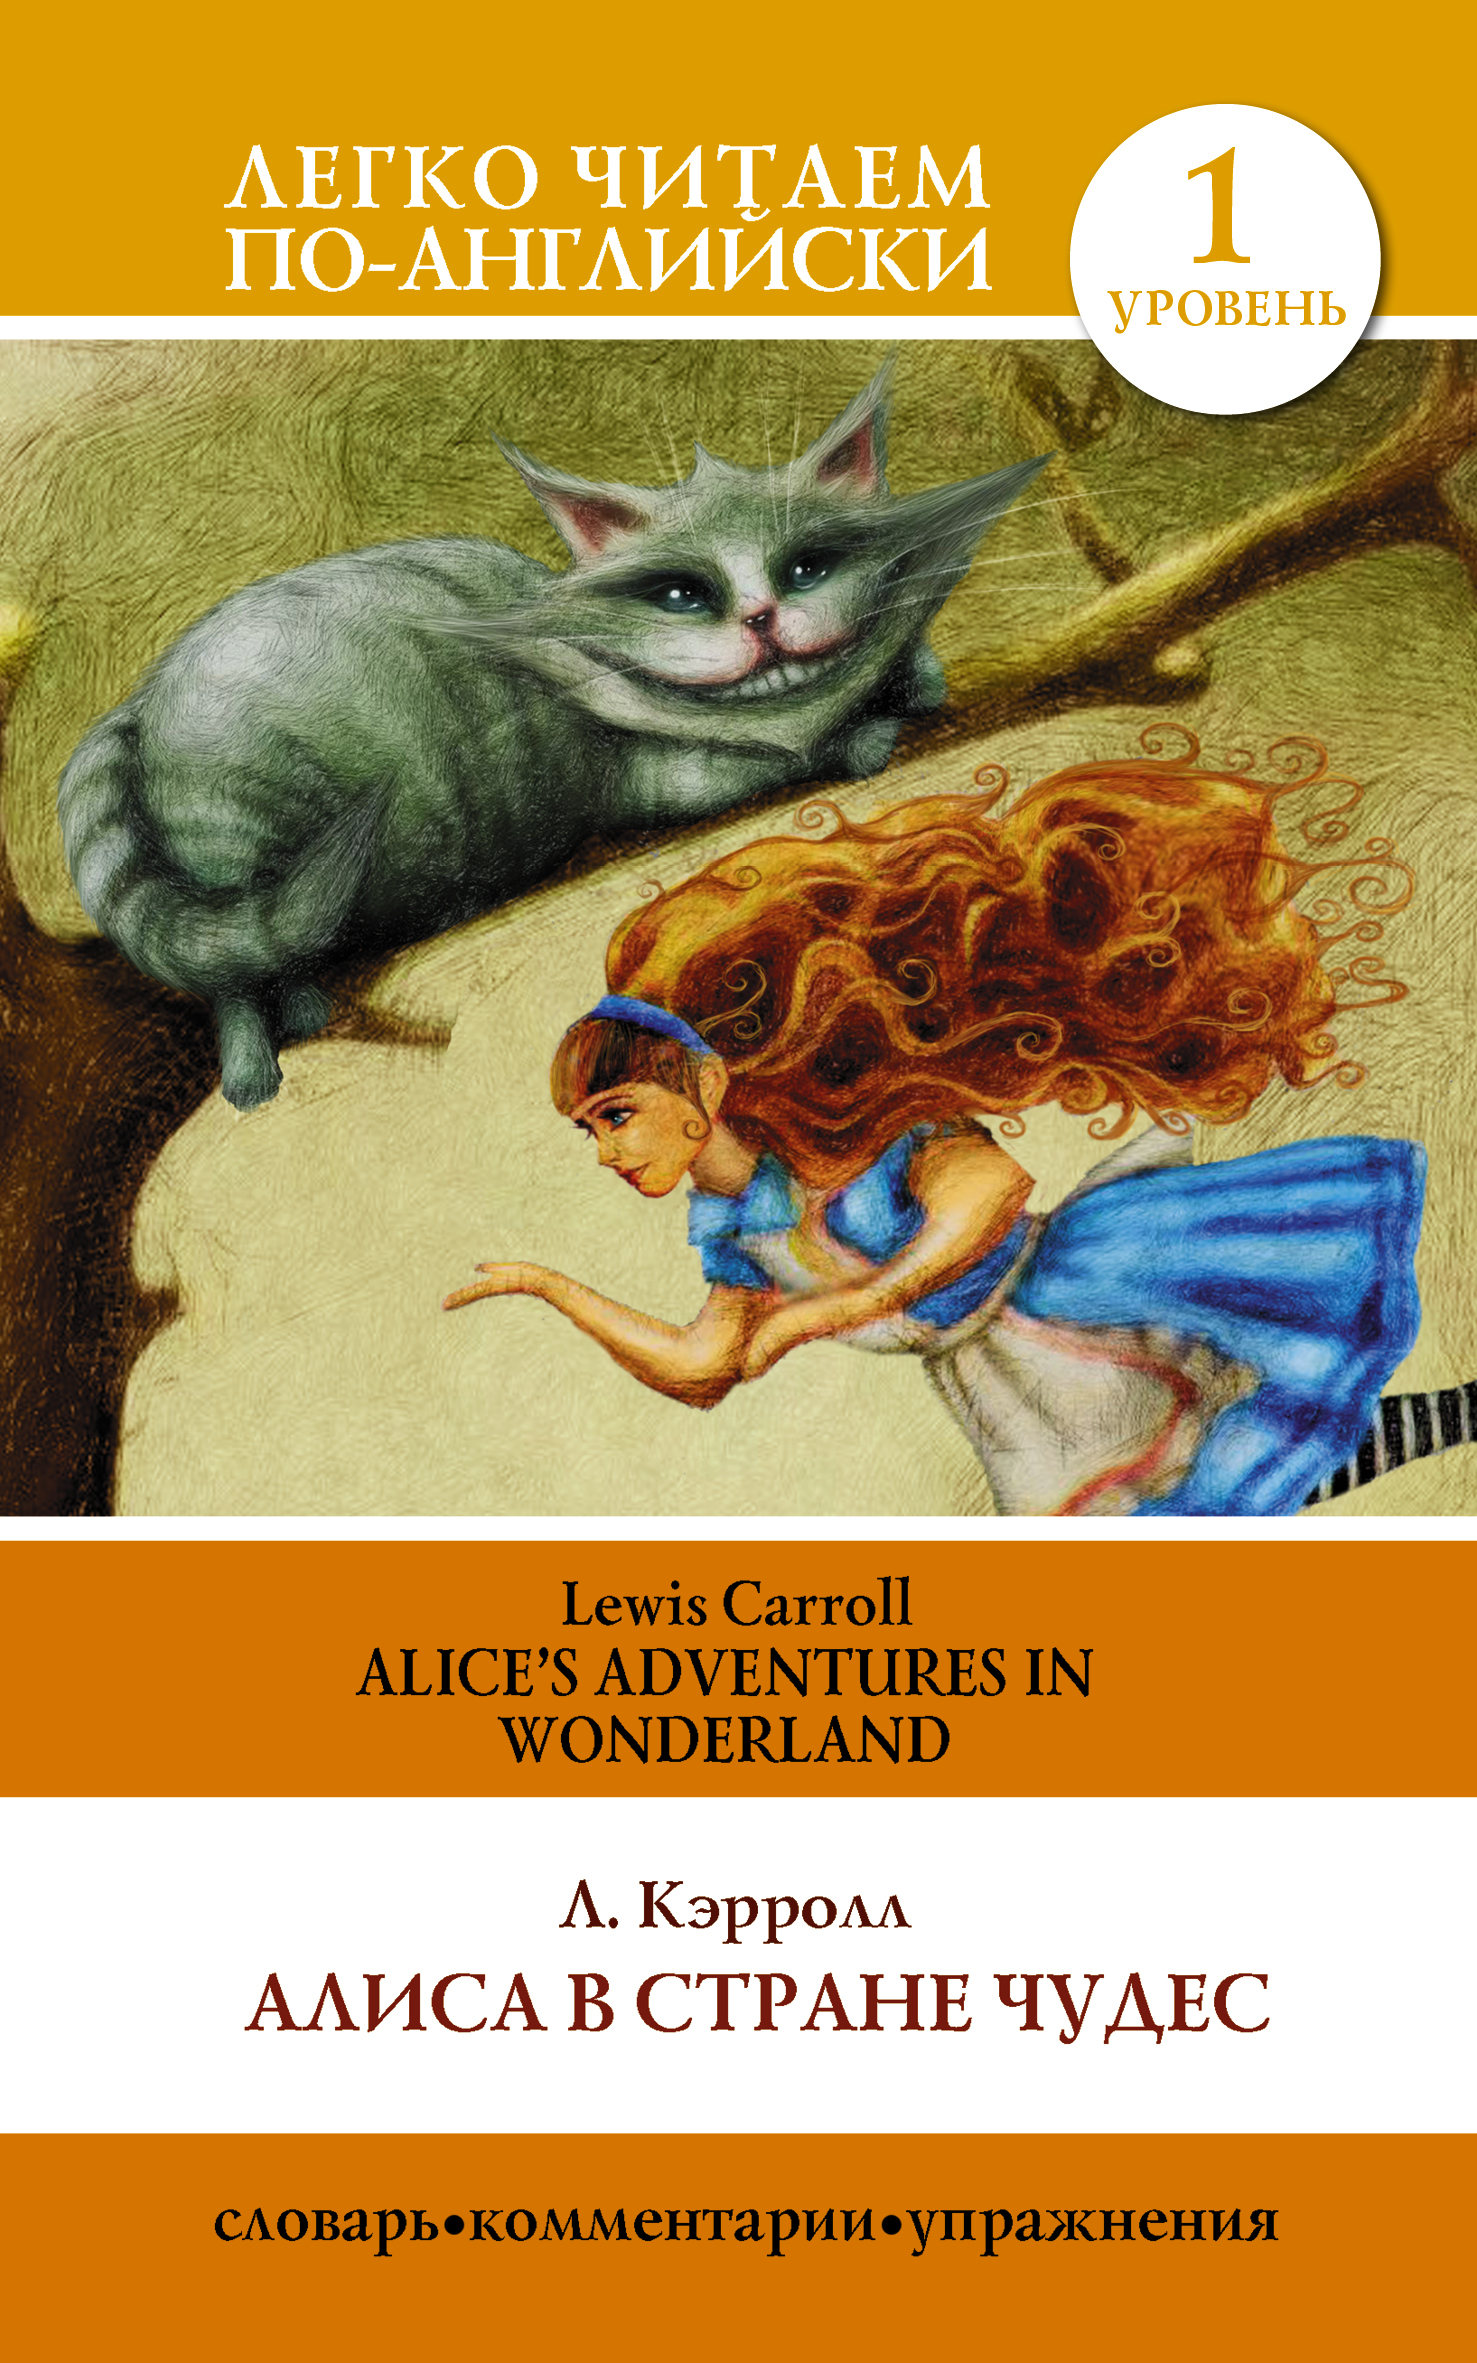 Кэрролл Льюис Алиса в стране чудес=Alice's Adventures in Wonderland - страница 0